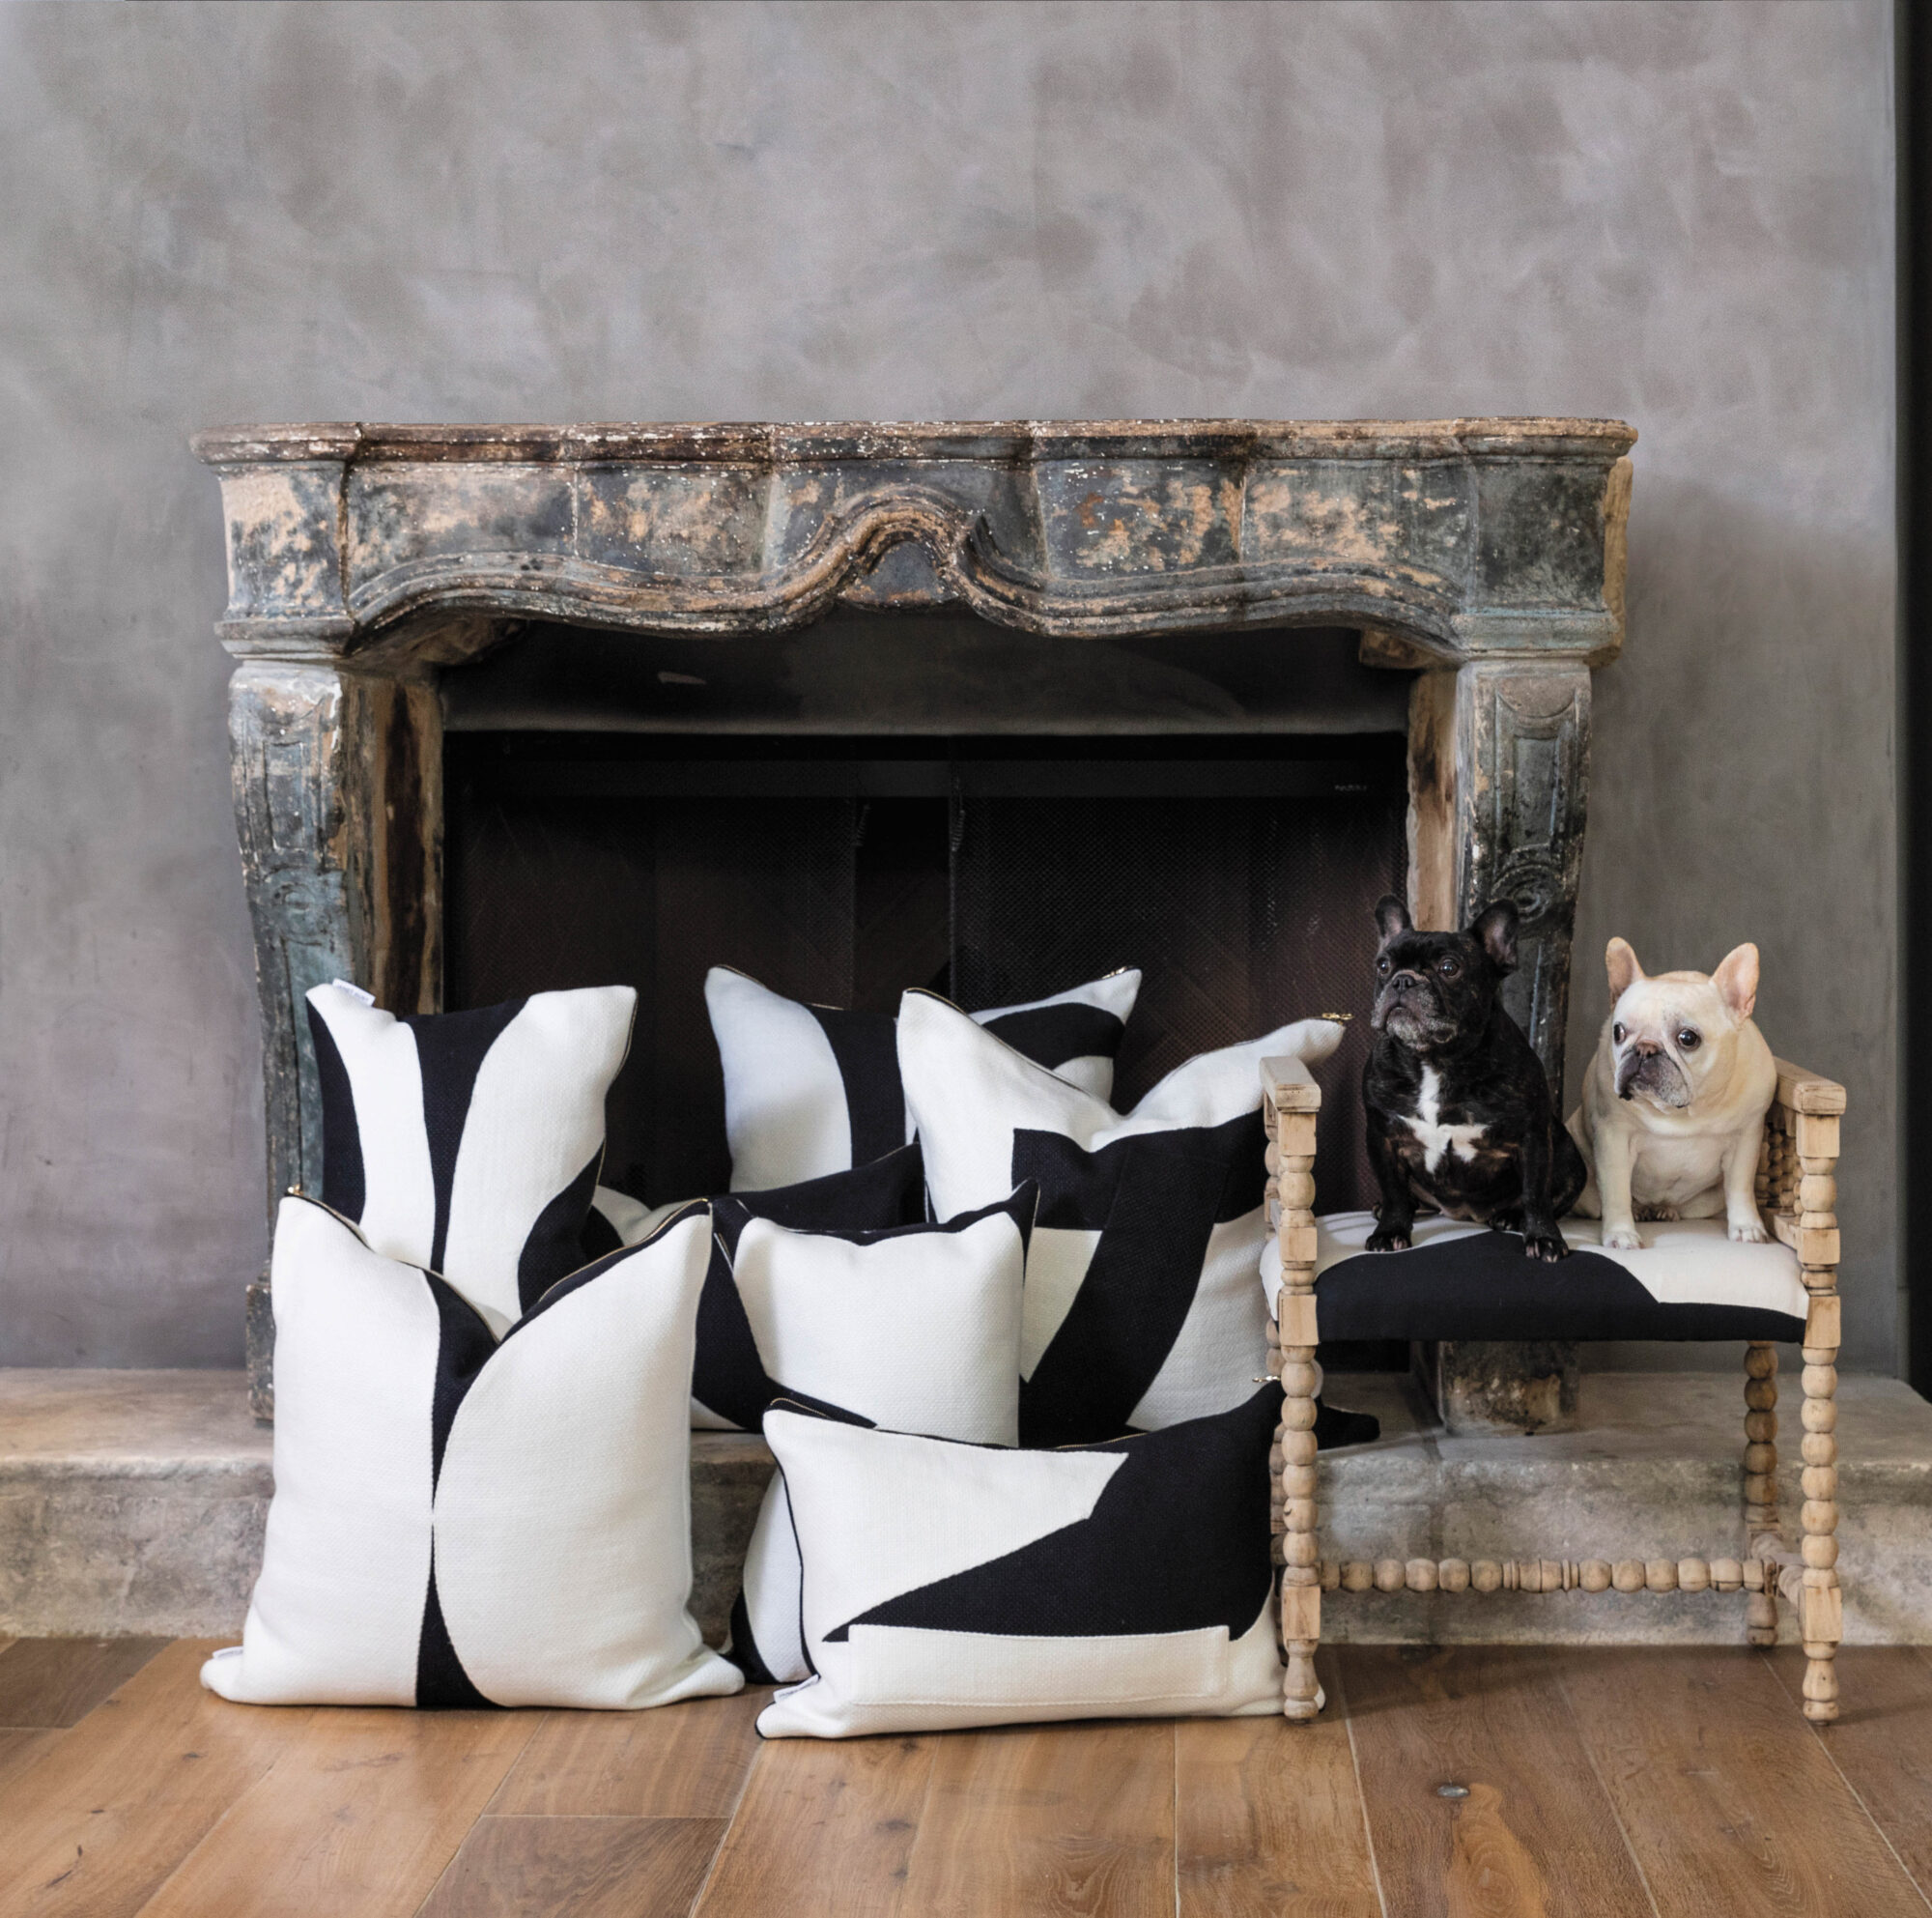 janet gust black white pillows in front of fireplace